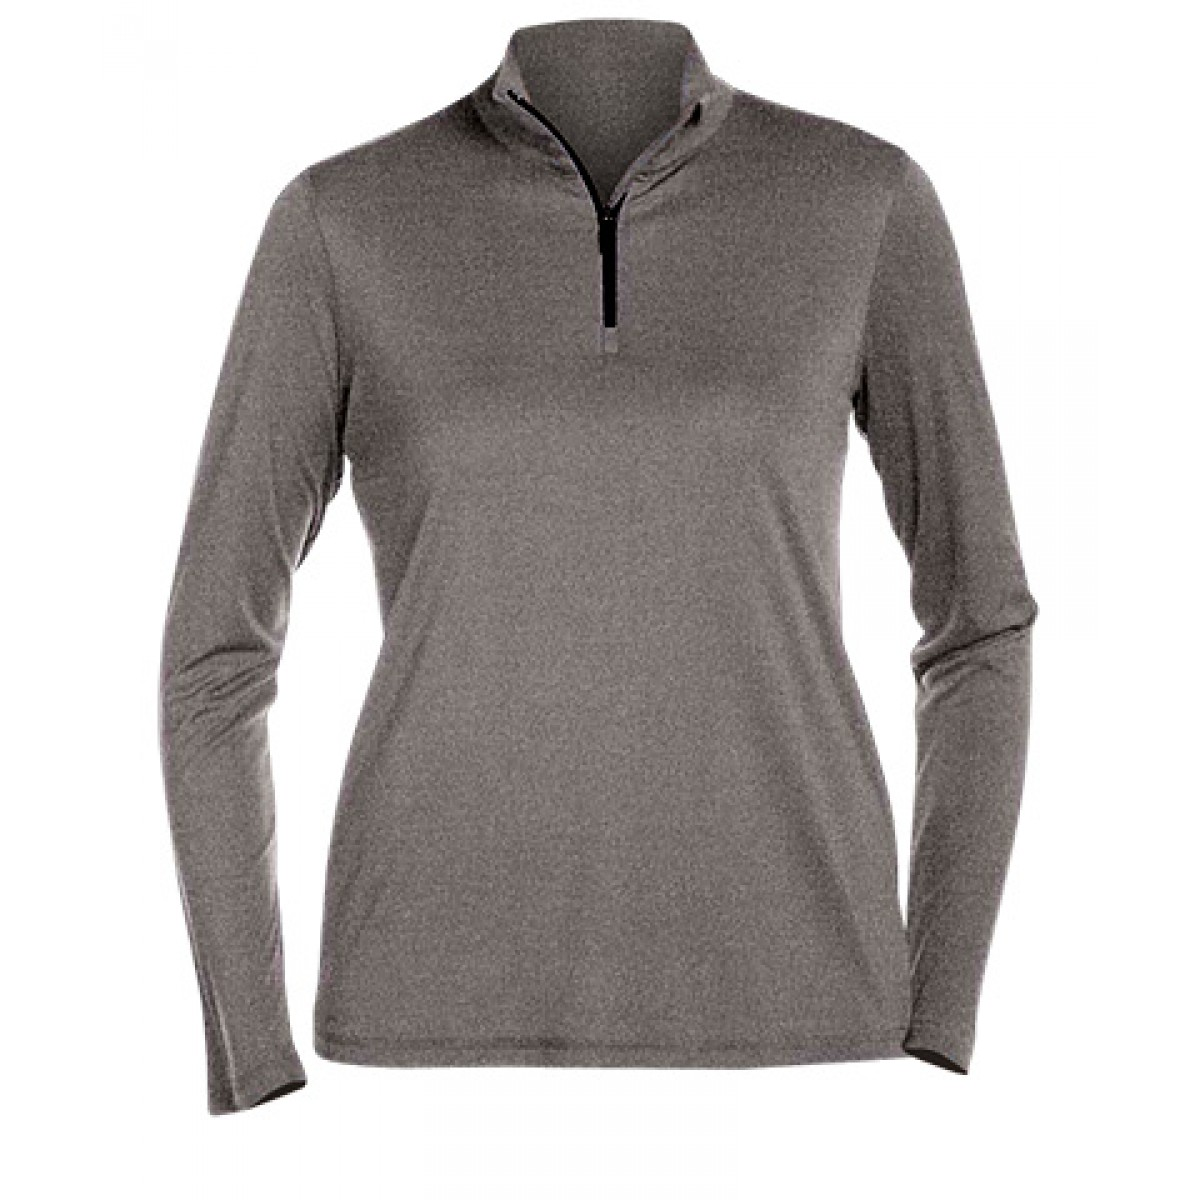 Ladies' Quarter-Zip Lightweight Pullover-Sports Grey-2XL